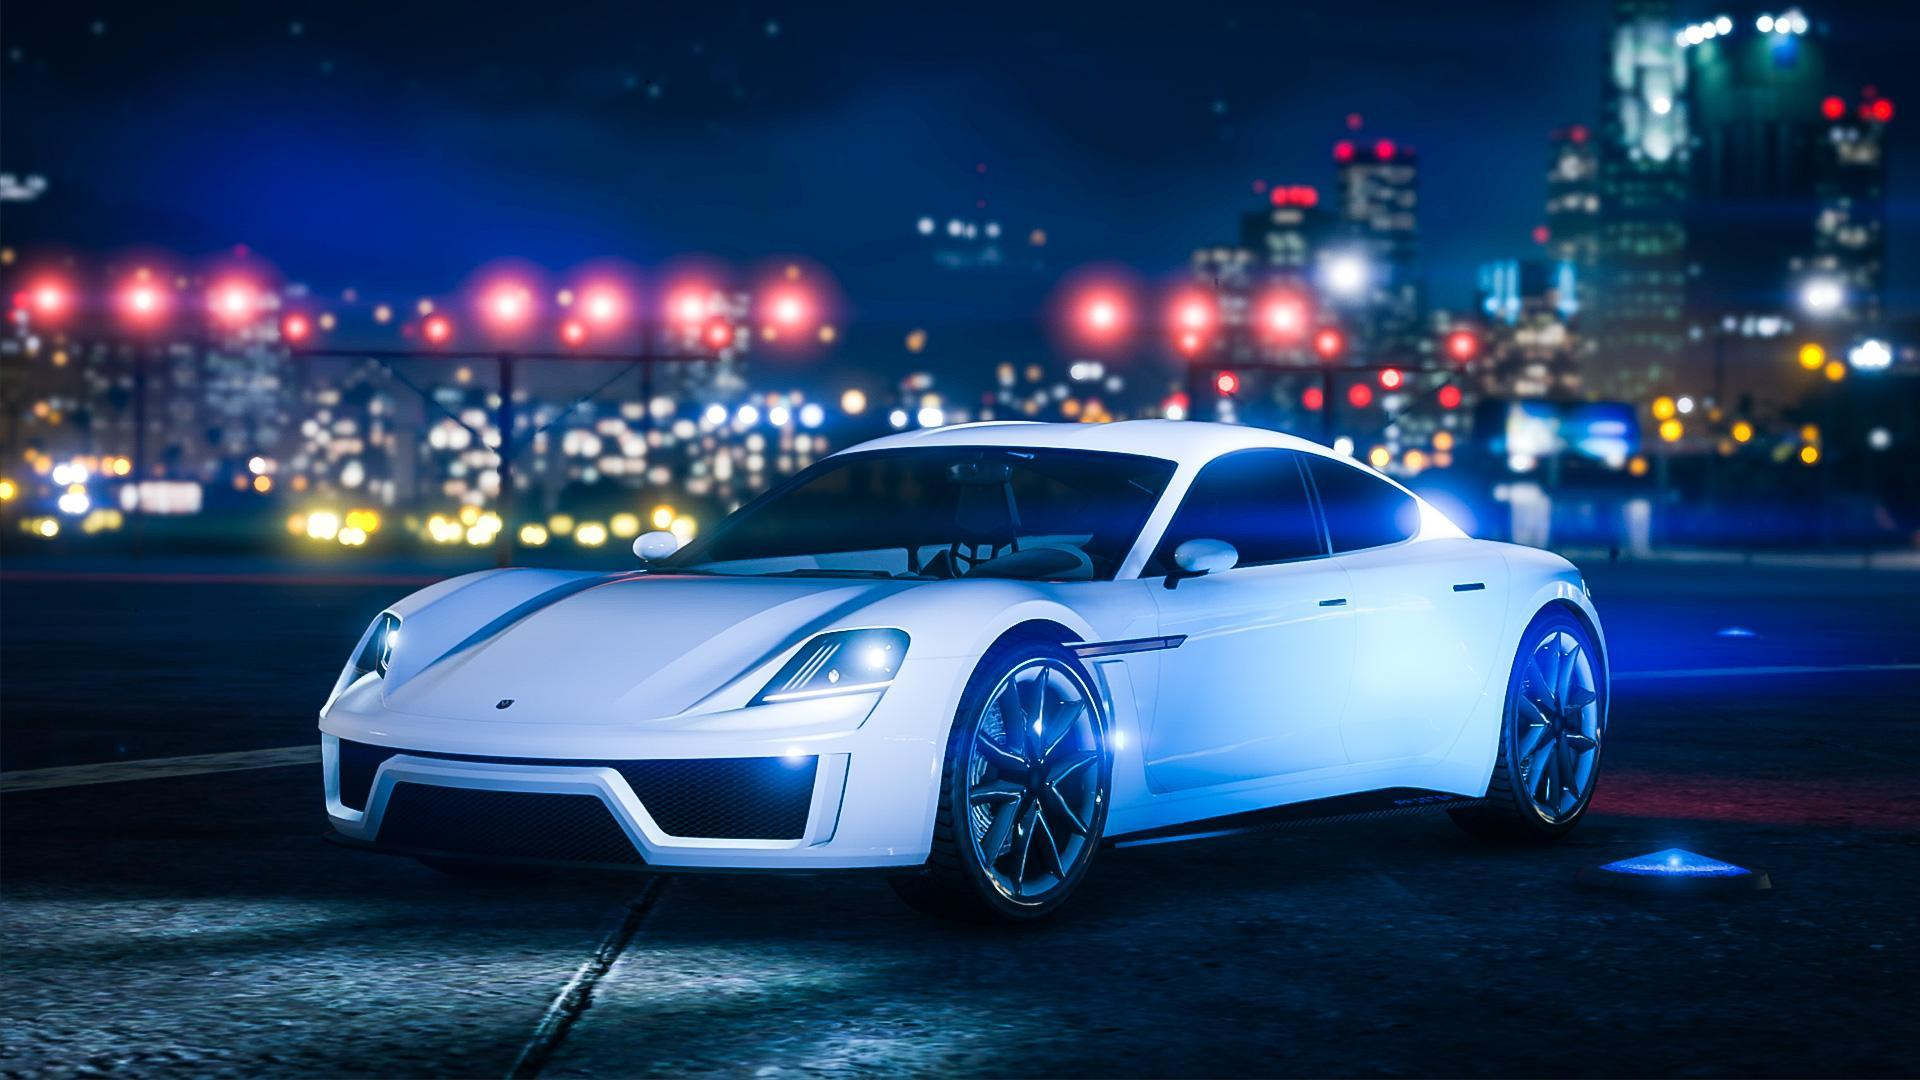 Awd Sports Cars >> Neon - GTA V & GTA Online Vehicles Database & Statistics - Grand Theft Auto V